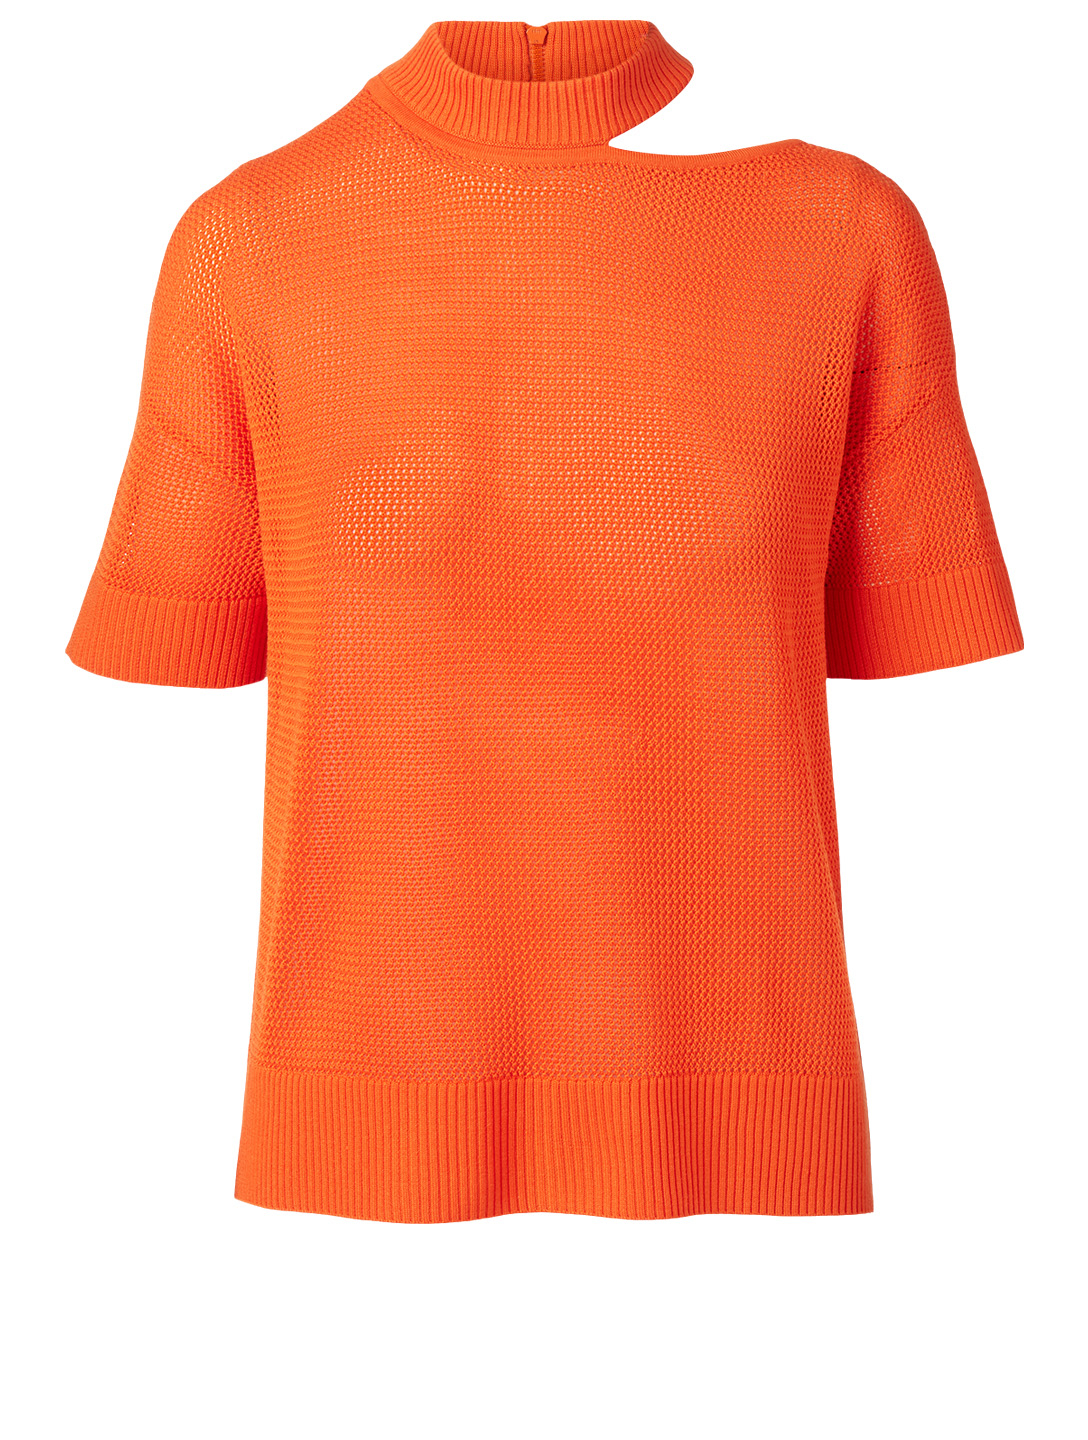 AKRIS PUNTO Wool Short-Sleeve Sweater With Cut-Out Women's Orange